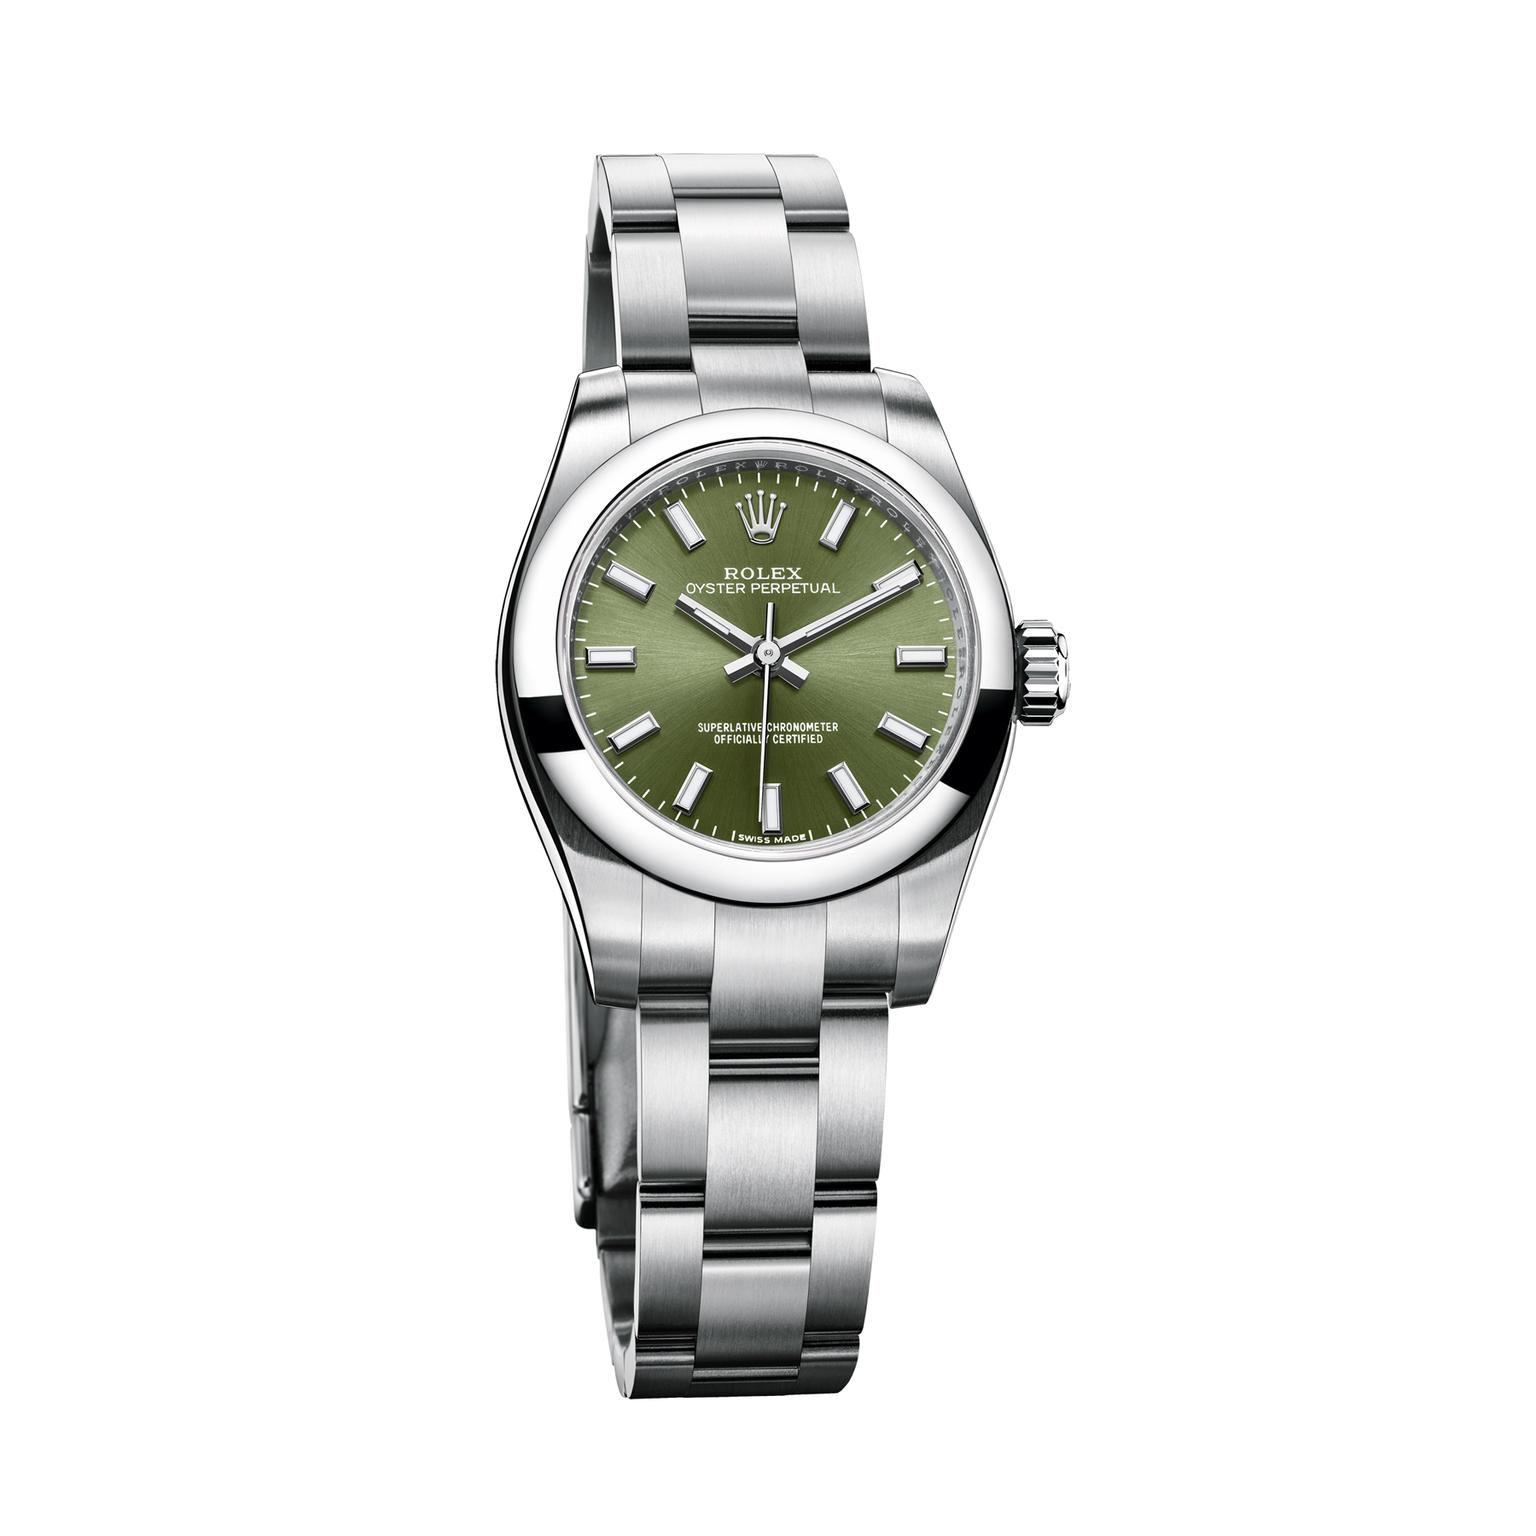 Steel Rolex Oyster Perpetual 26mm Steel Watch